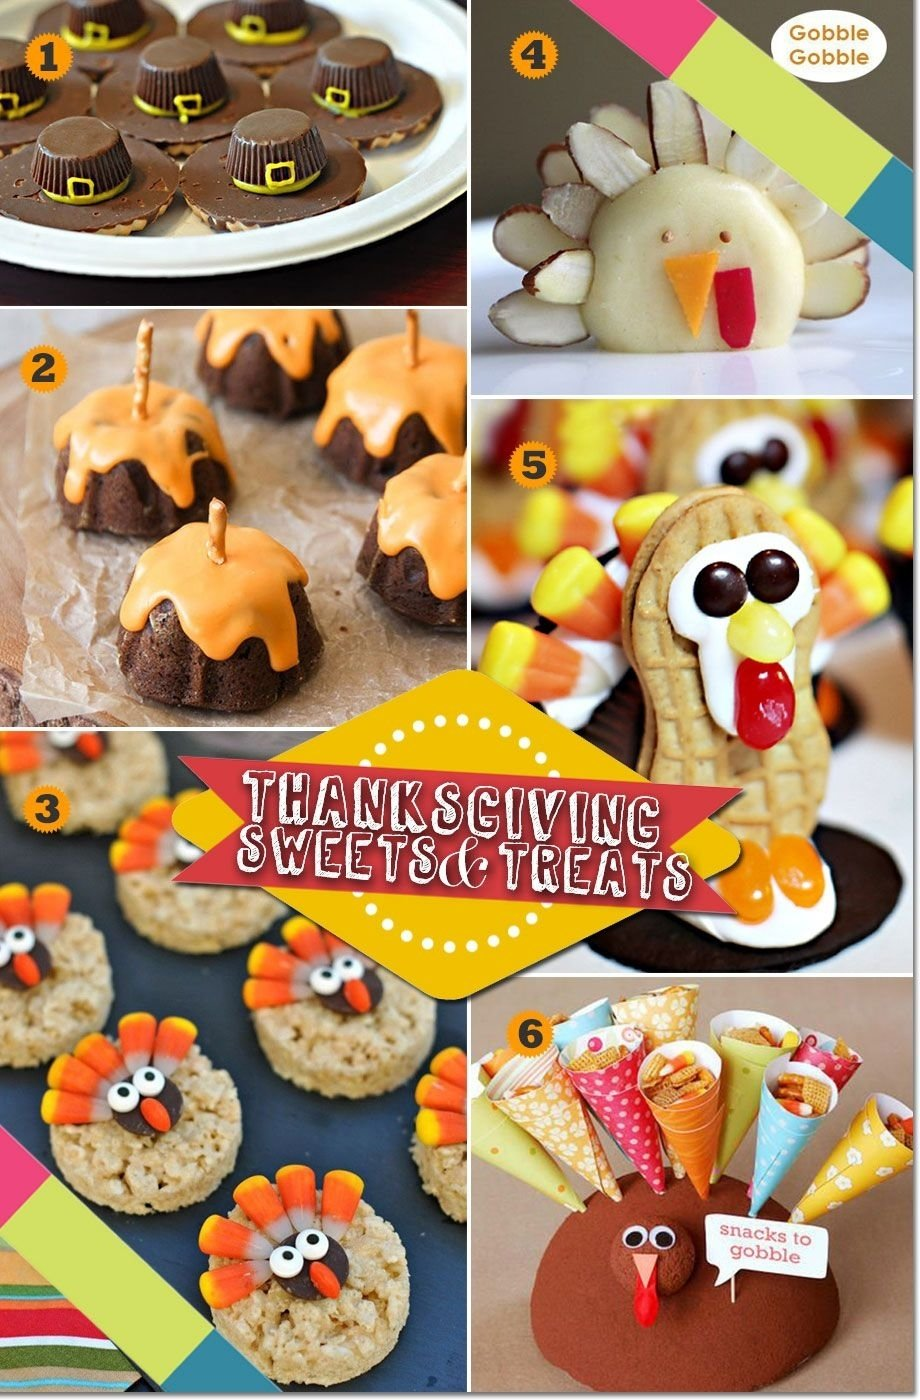 10 Ideal Thanksgiving Snack Ideas For Kids kid friendly thanksgiving party ideas activities crafts treats